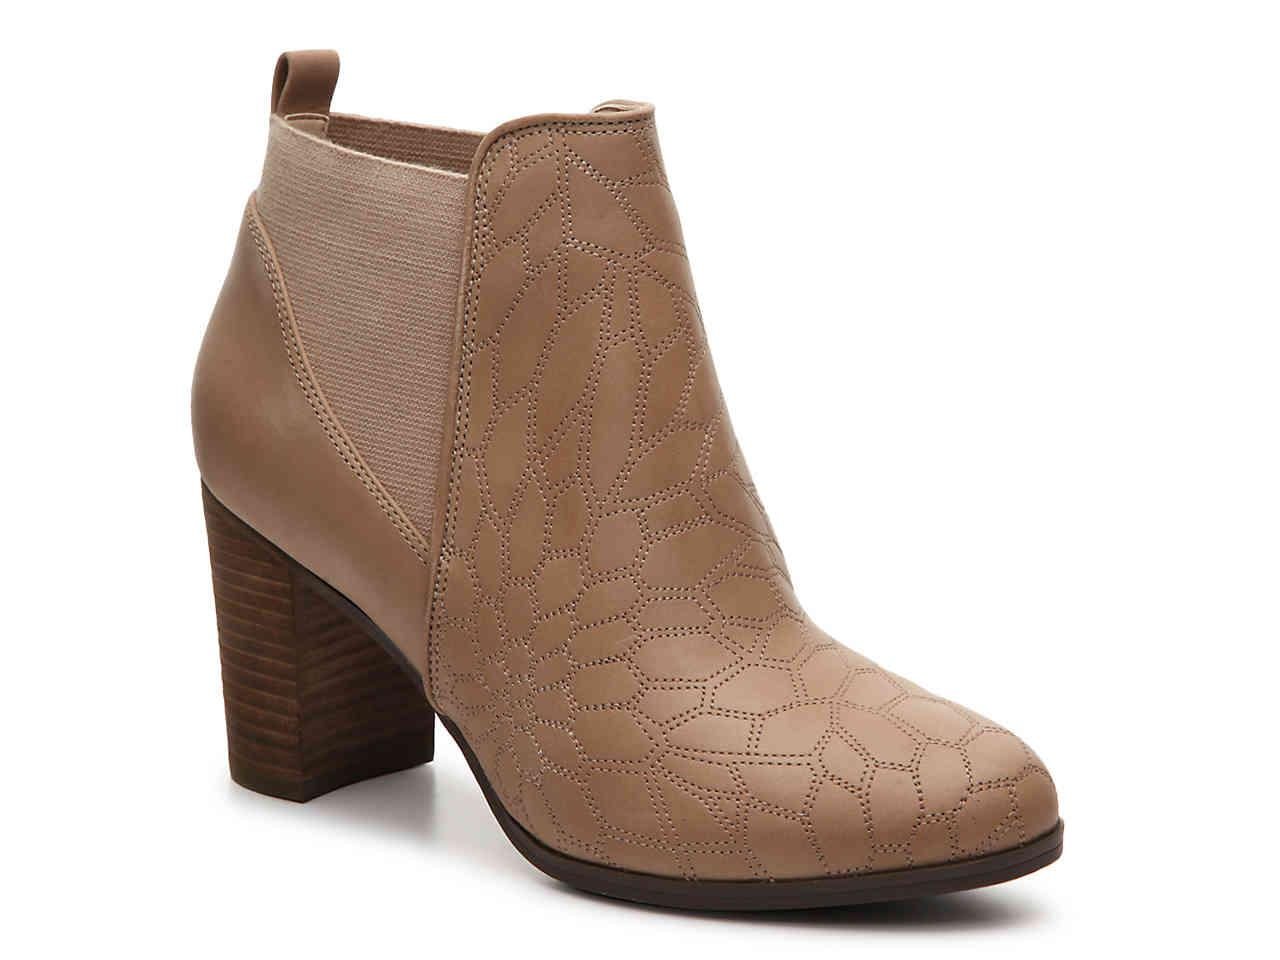 Dr. Scholls Leather Dixie Bootie in